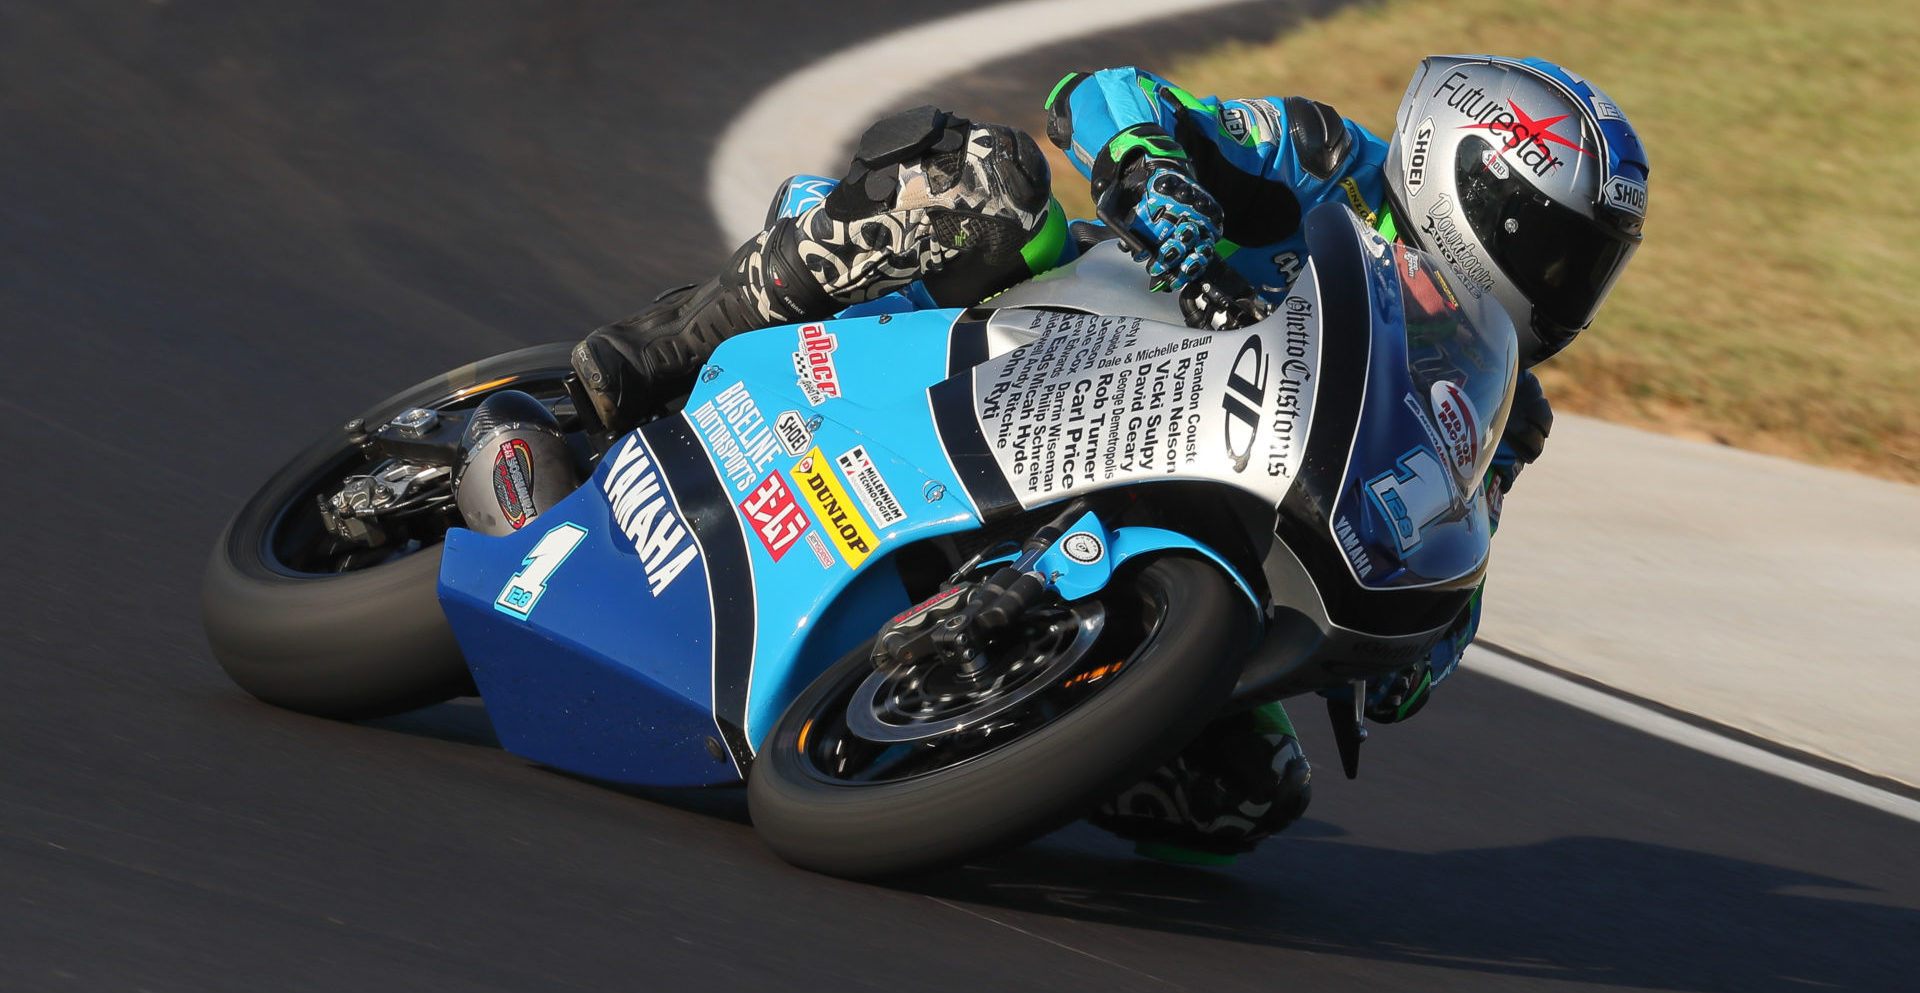 Chris Parrish (1) riding an AP MotoArts Yamaha FZ-07/MT-07 during the 2019 MotoAmerica Twins Cup finale at Barber Motorsports Park. Photo by Brian J. Nelson, courtesy of AP MotoArts.